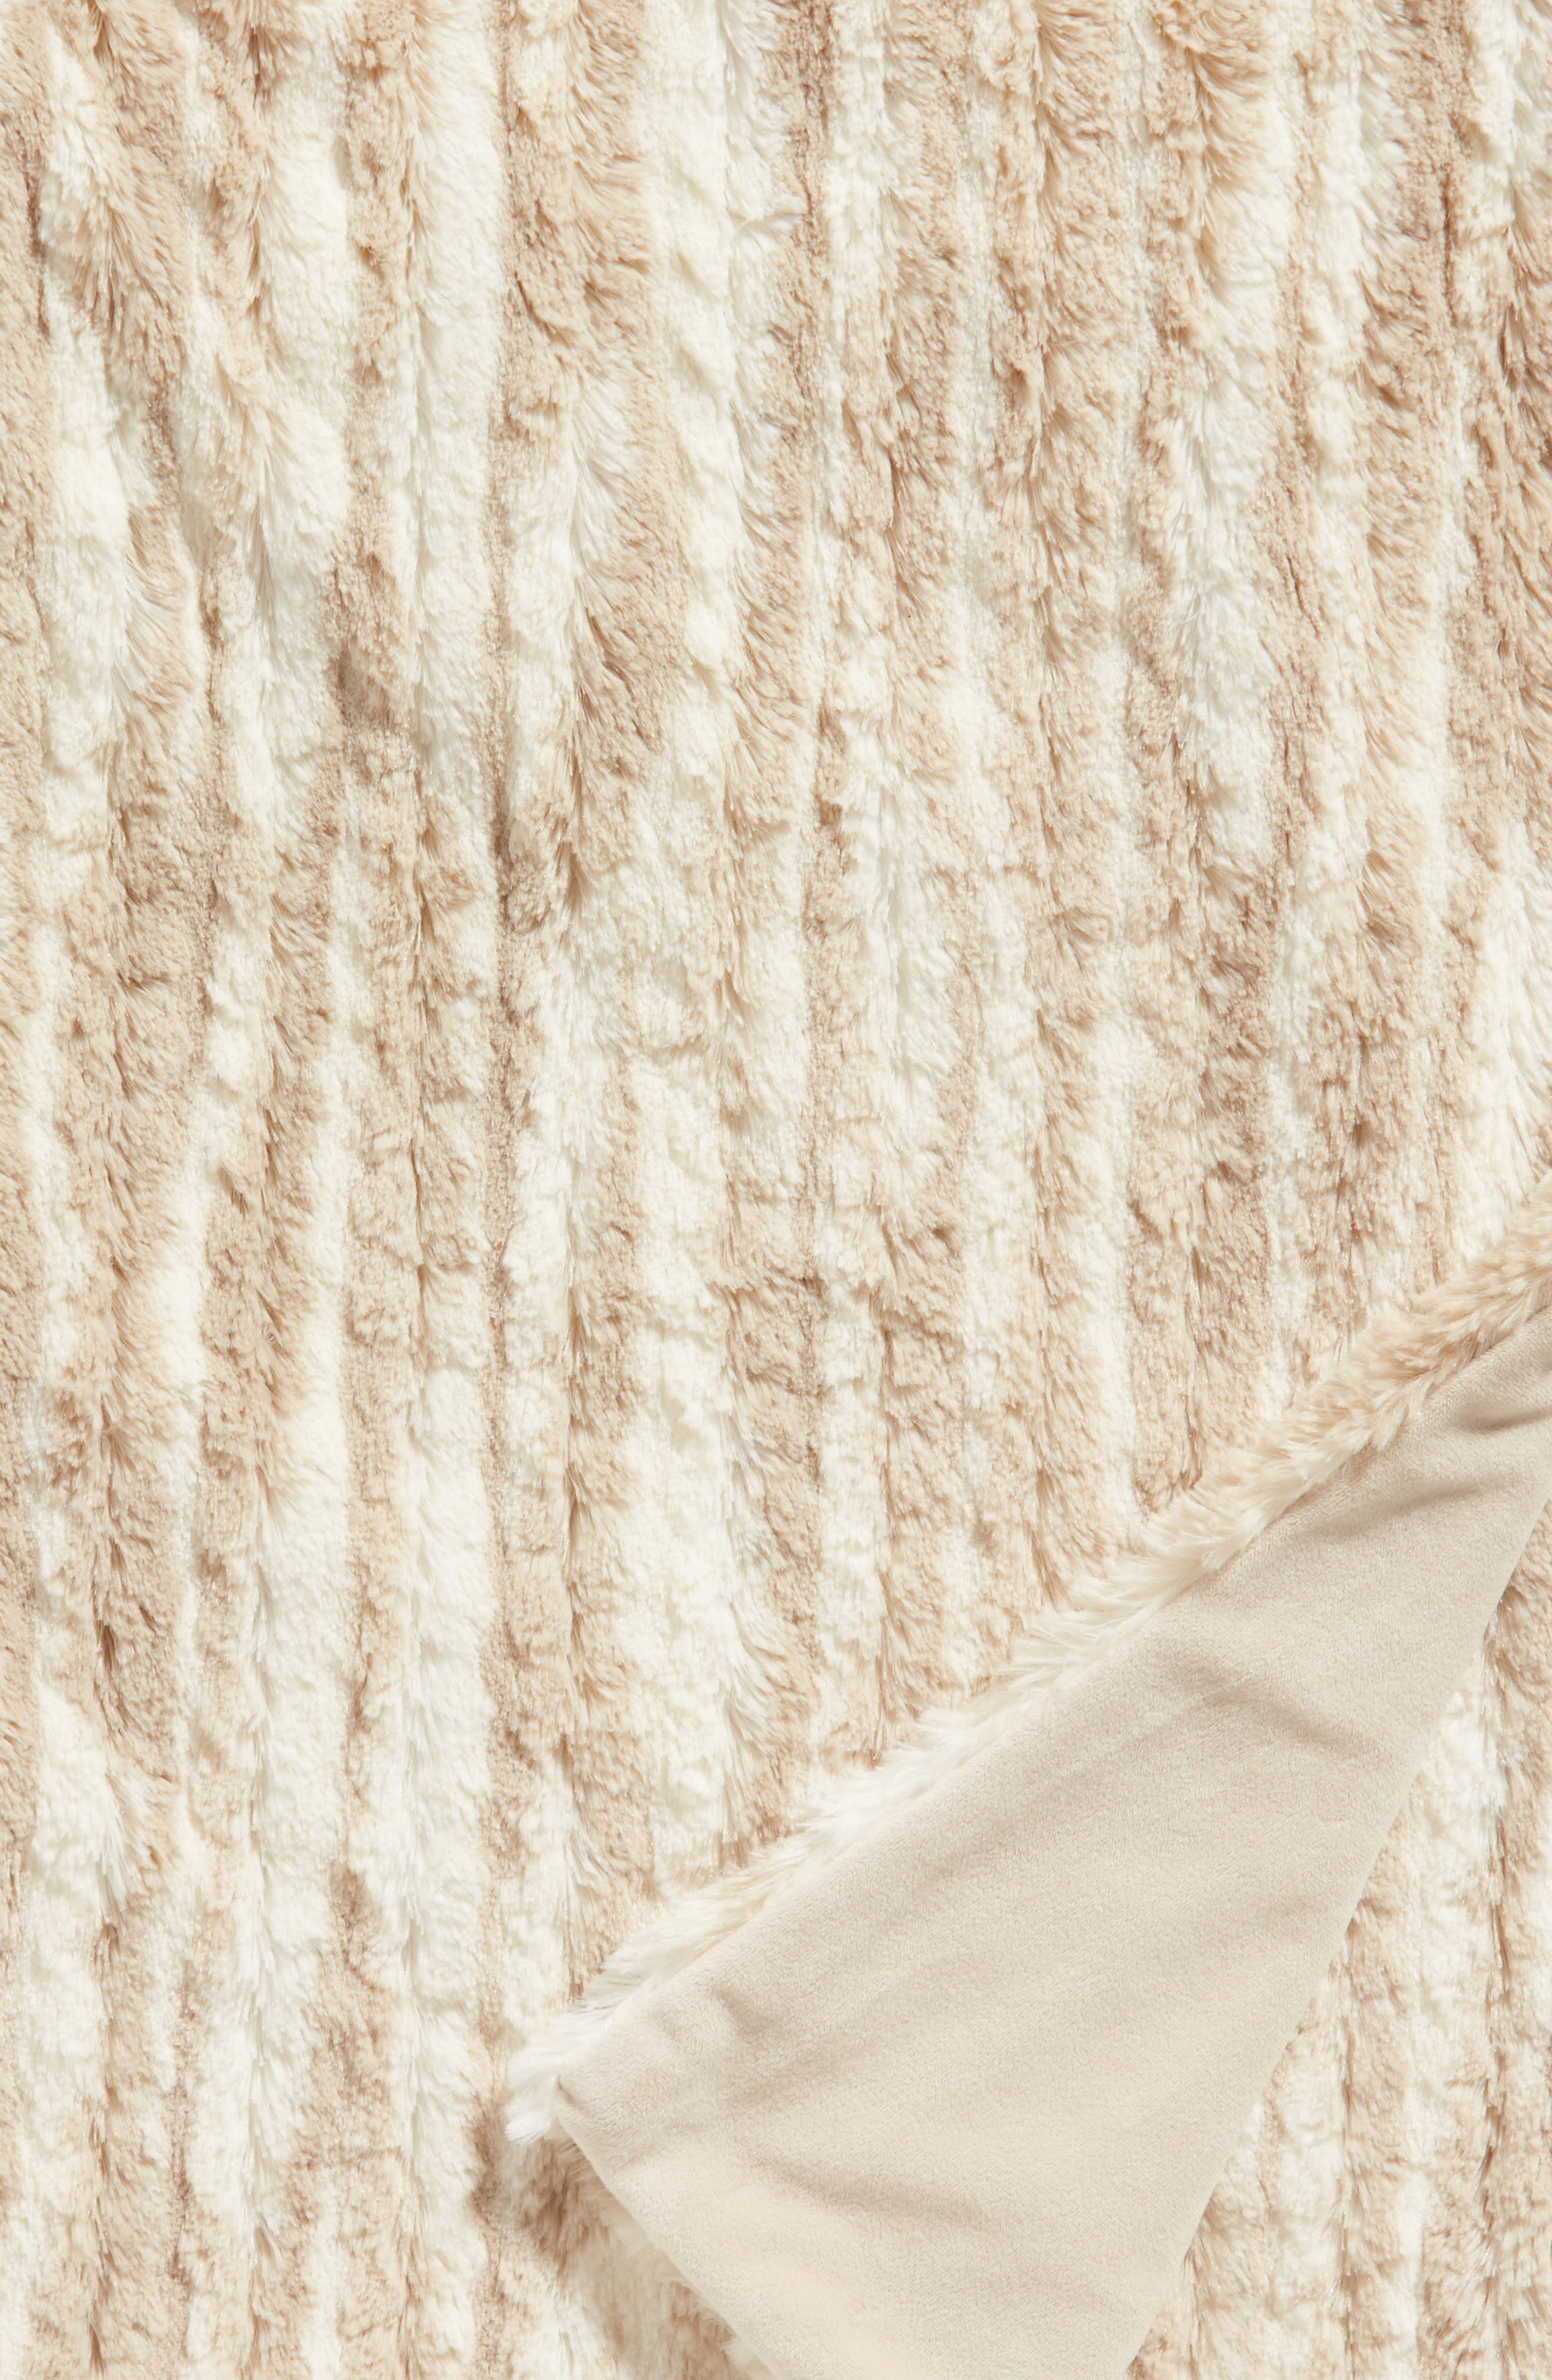 Soft Ribbed Plush Throw,                             Alternate thumbnail 2, color,                             BEIGE OATMEAL PRINT